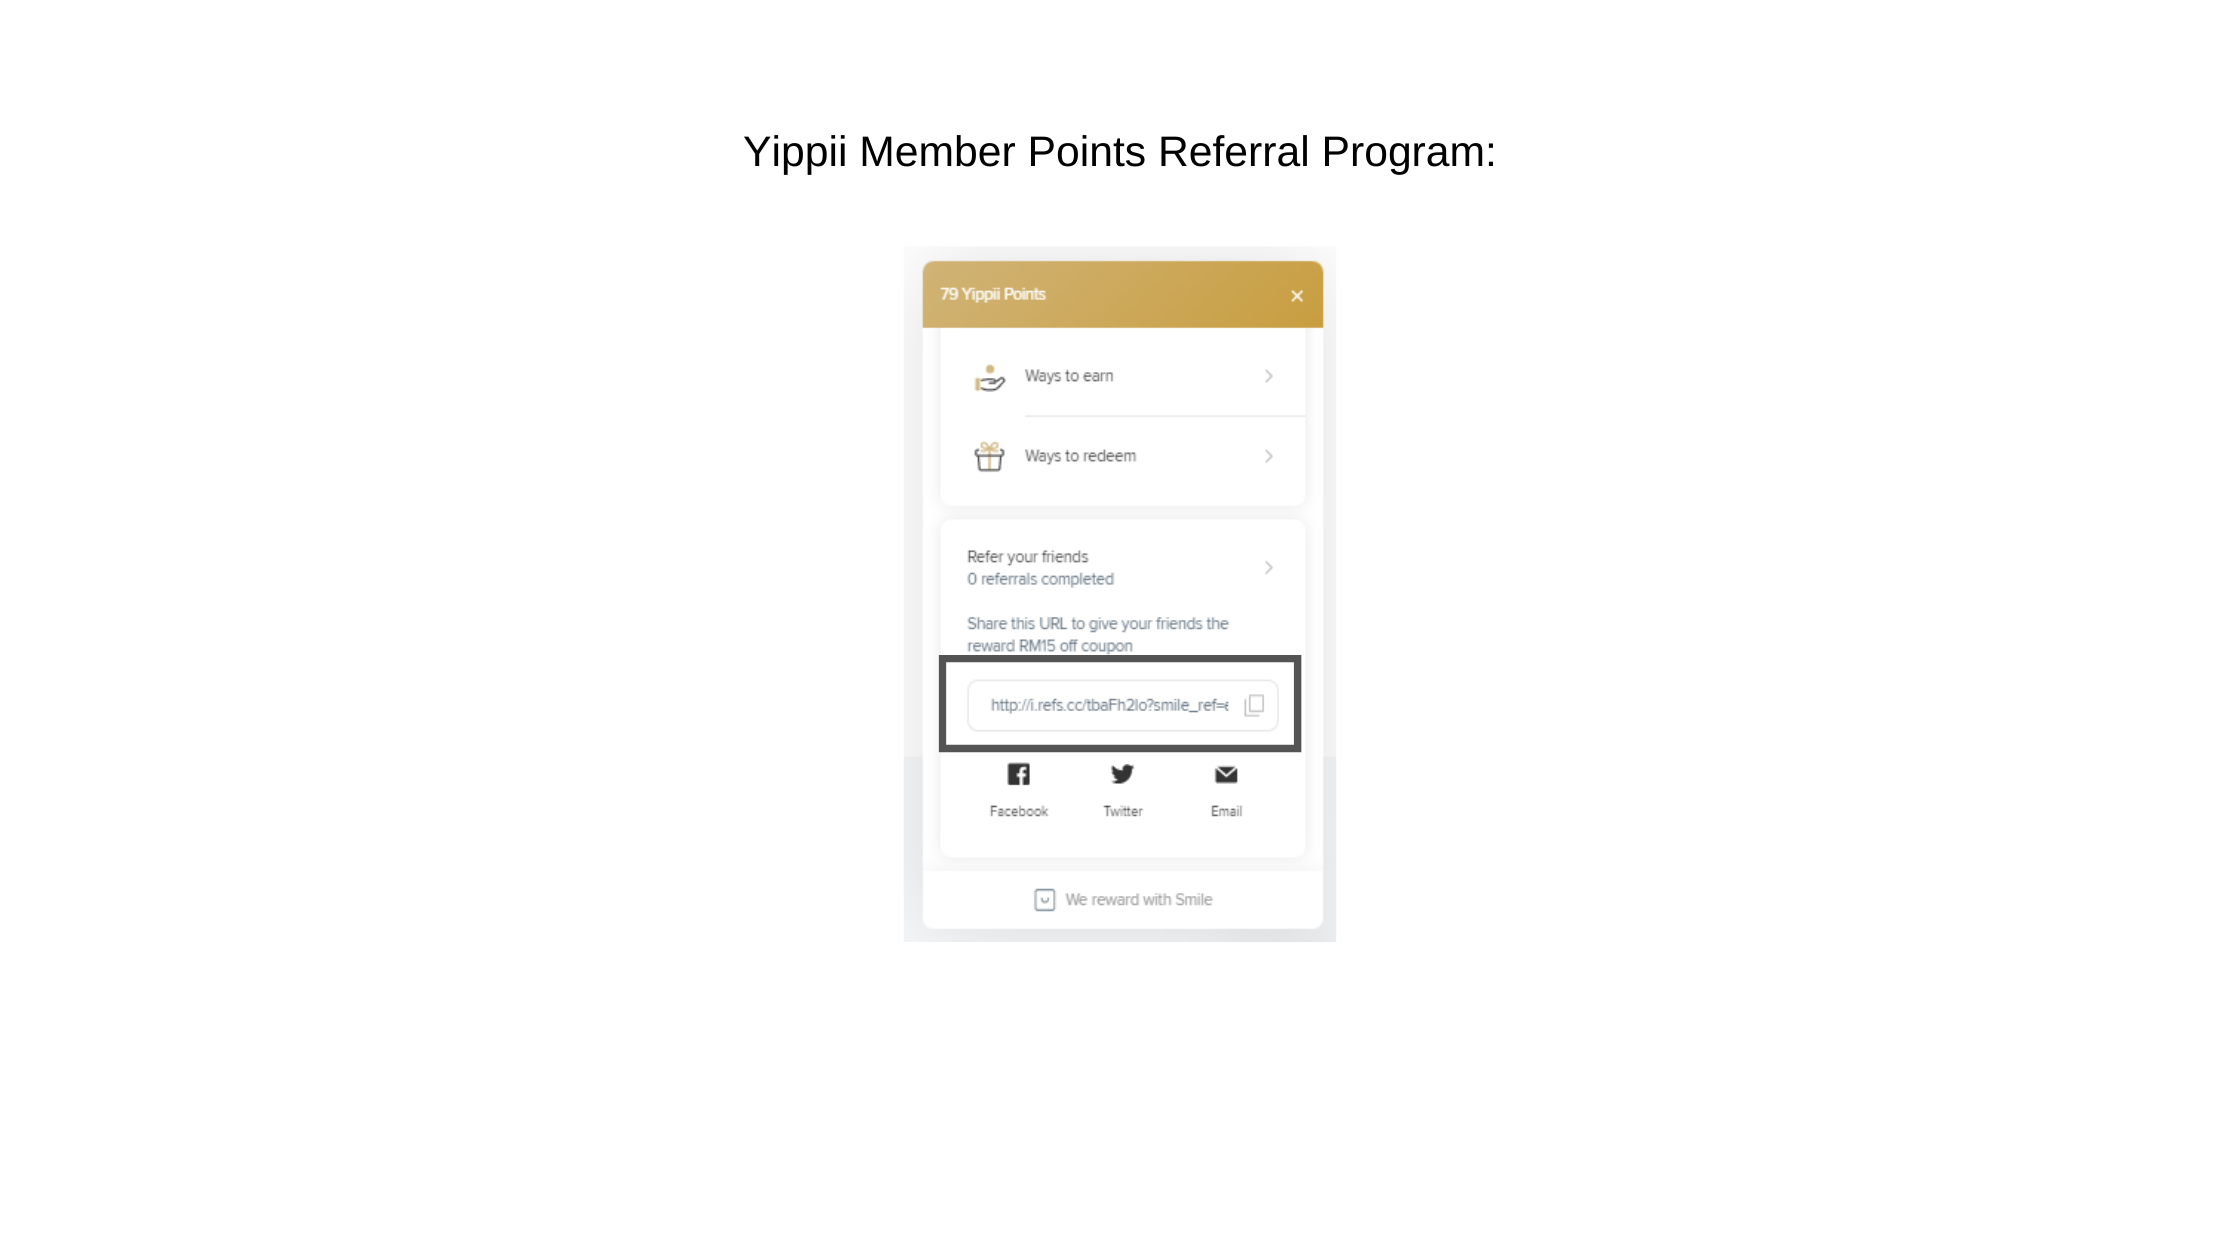 Yippii Referral Program